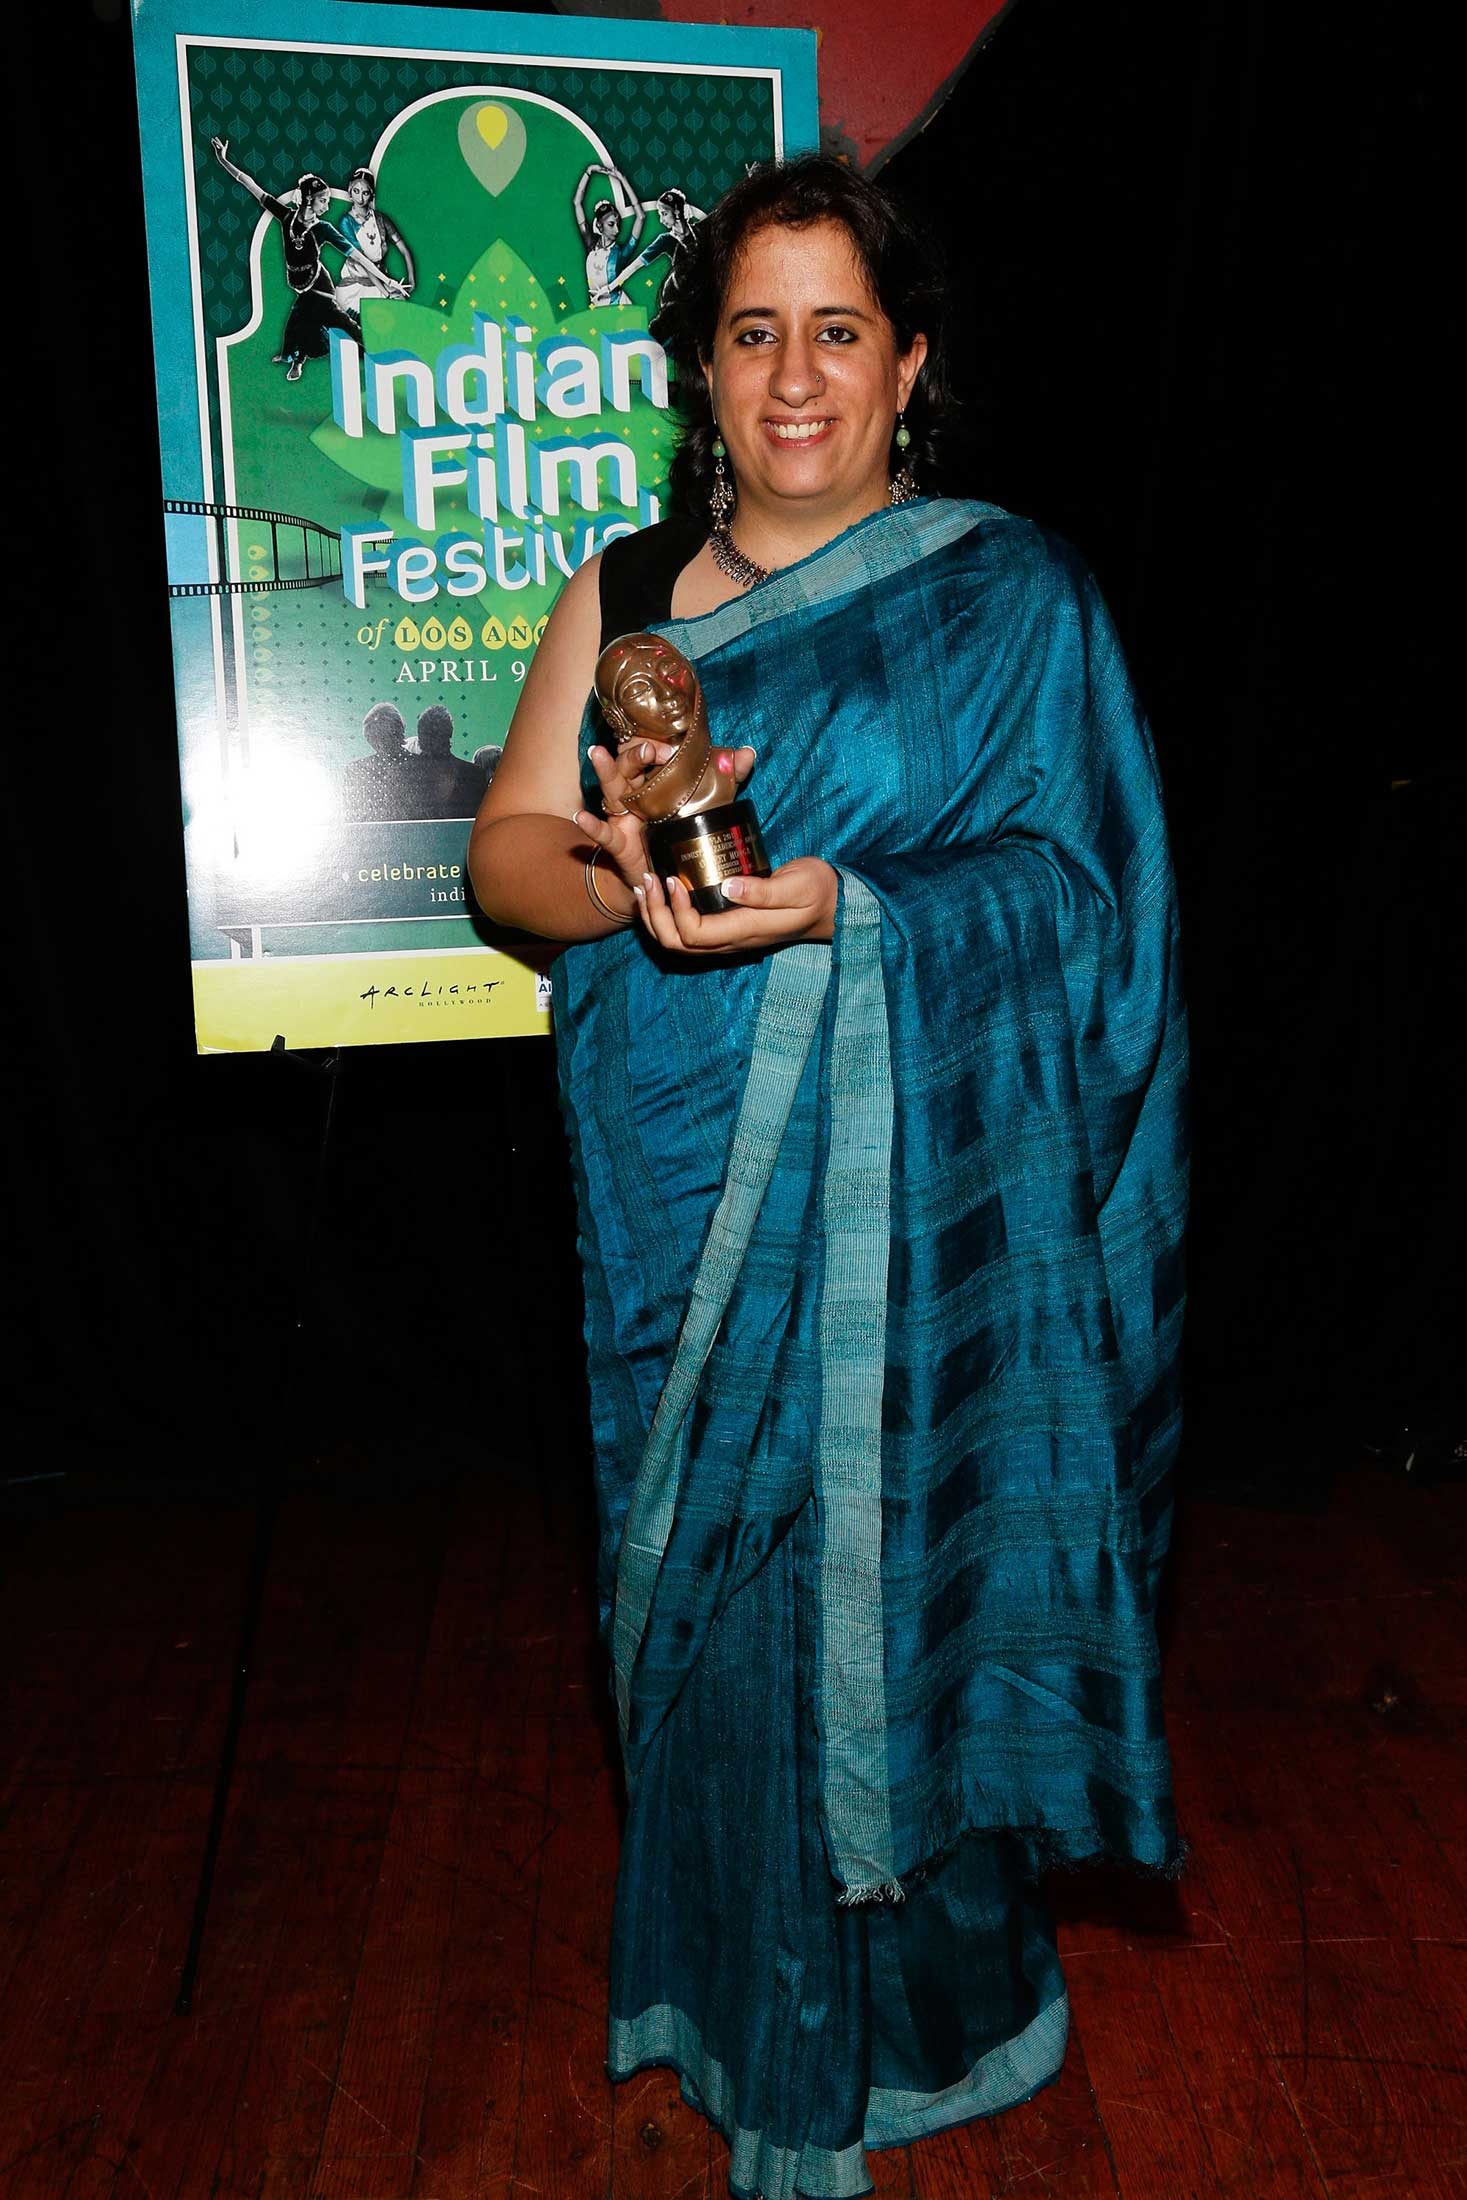 The Woman Who Transformed Bollywood Behind the Scenes